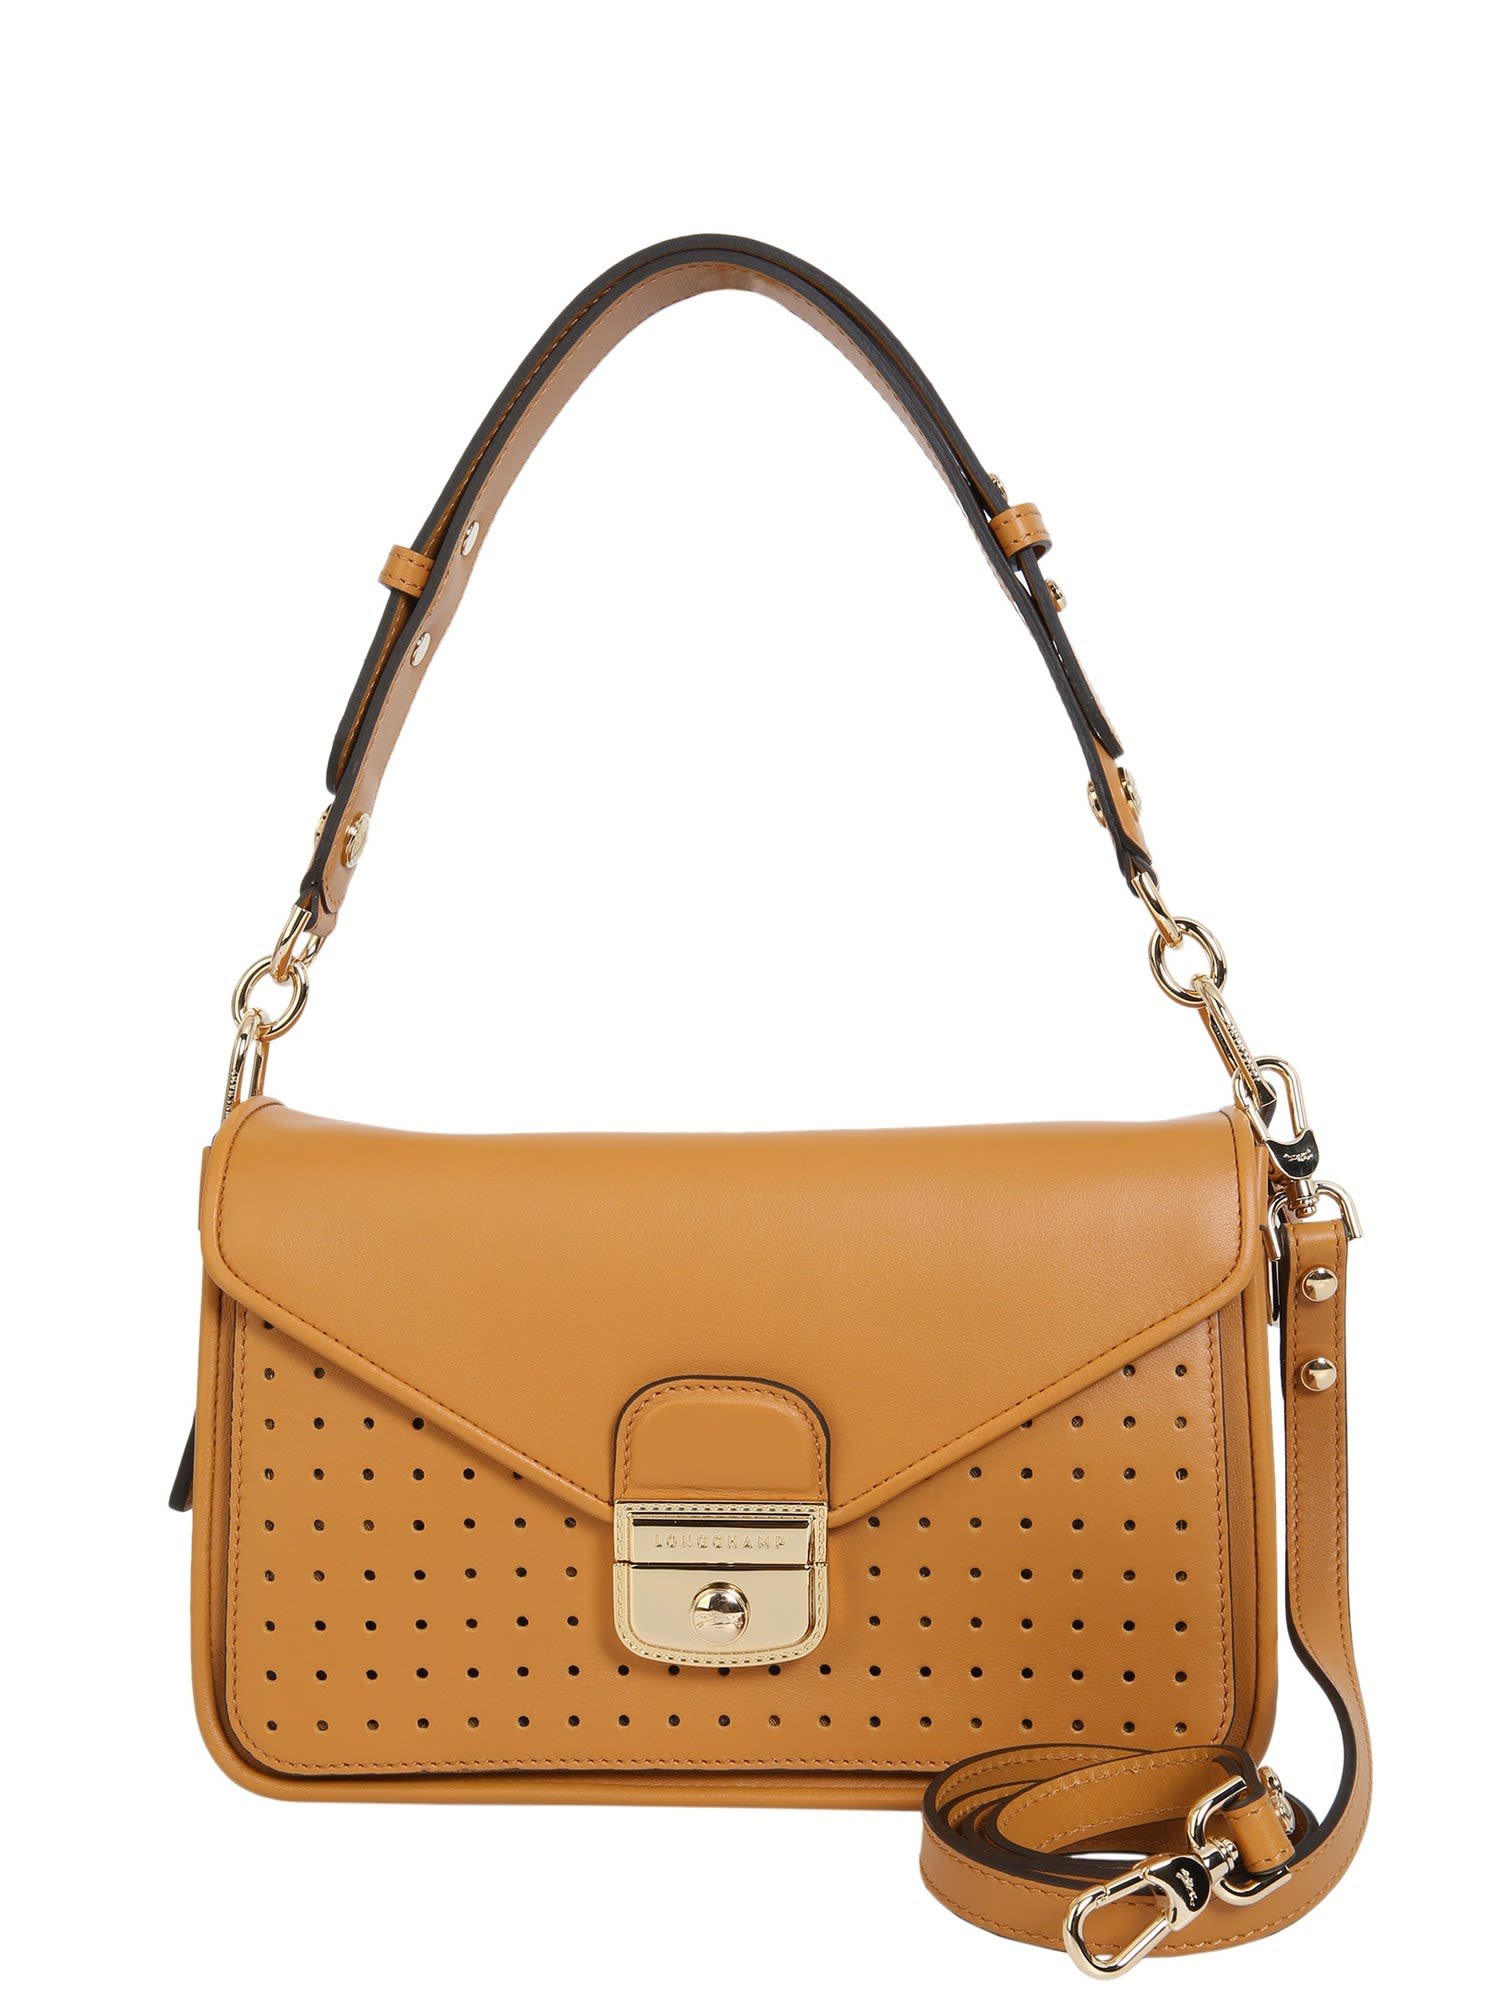 Small Mademoiselle Bag in Cuoio